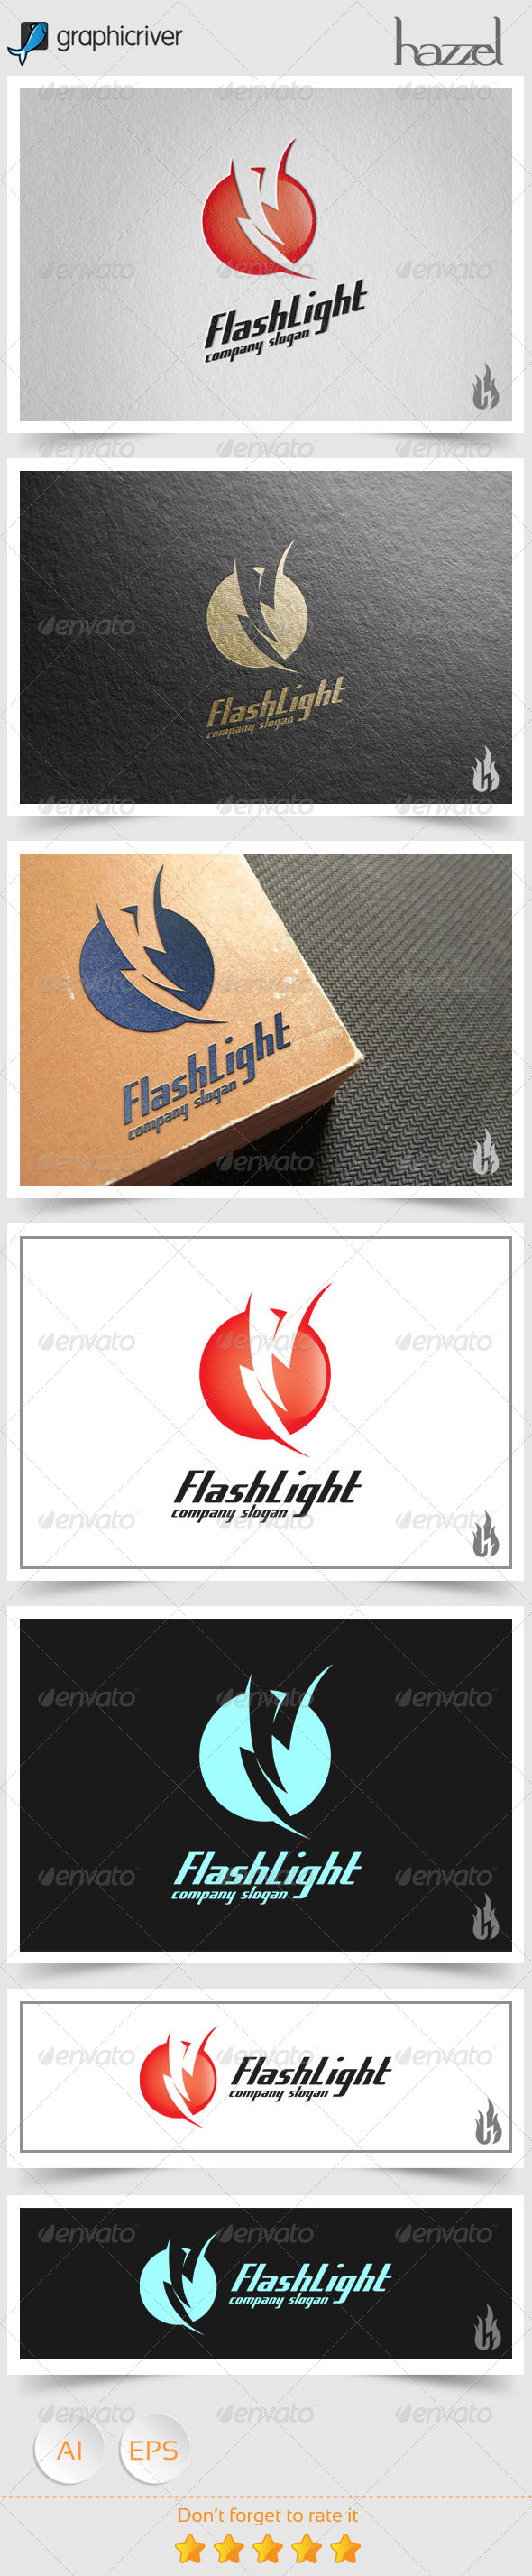 GraphicRiver Flash Light Logo 8536139